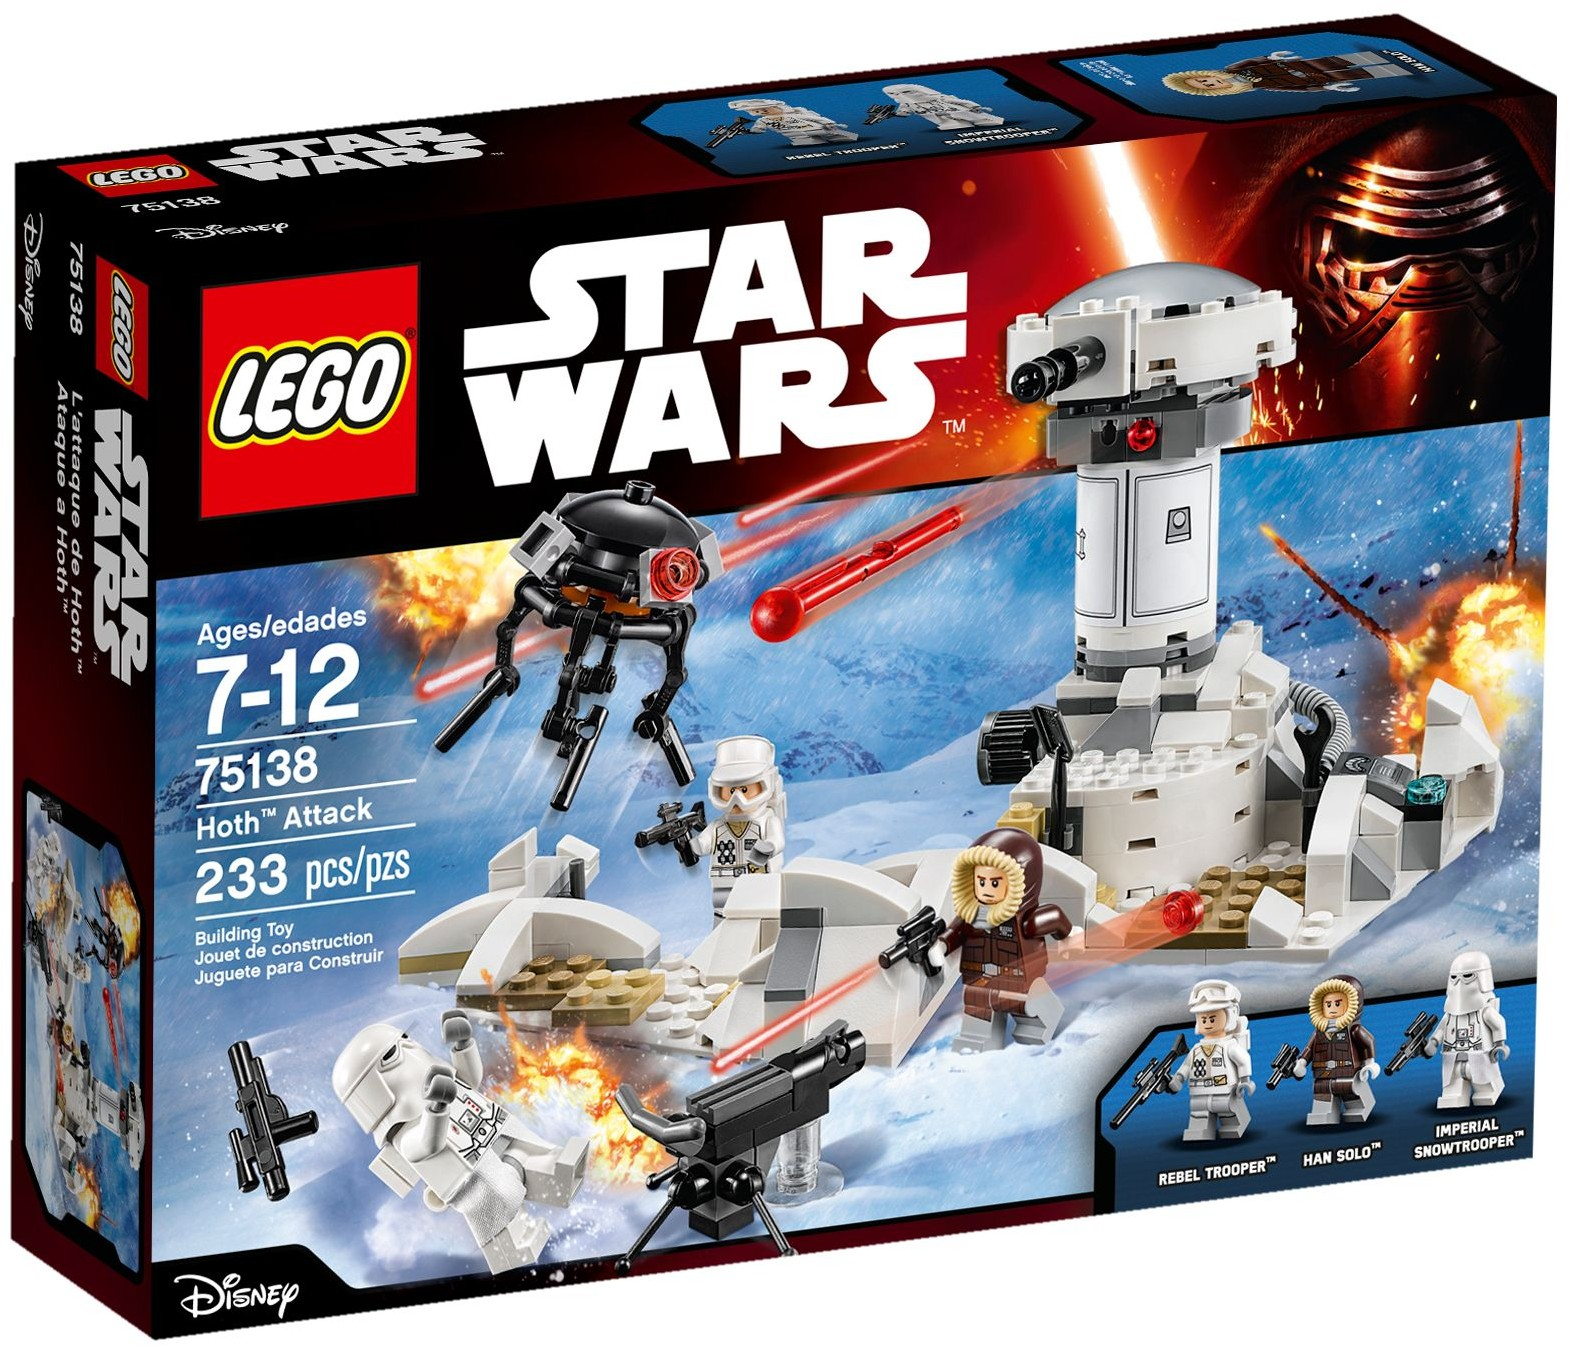 LEGO 75138 - Star Wars - Hoth Attack